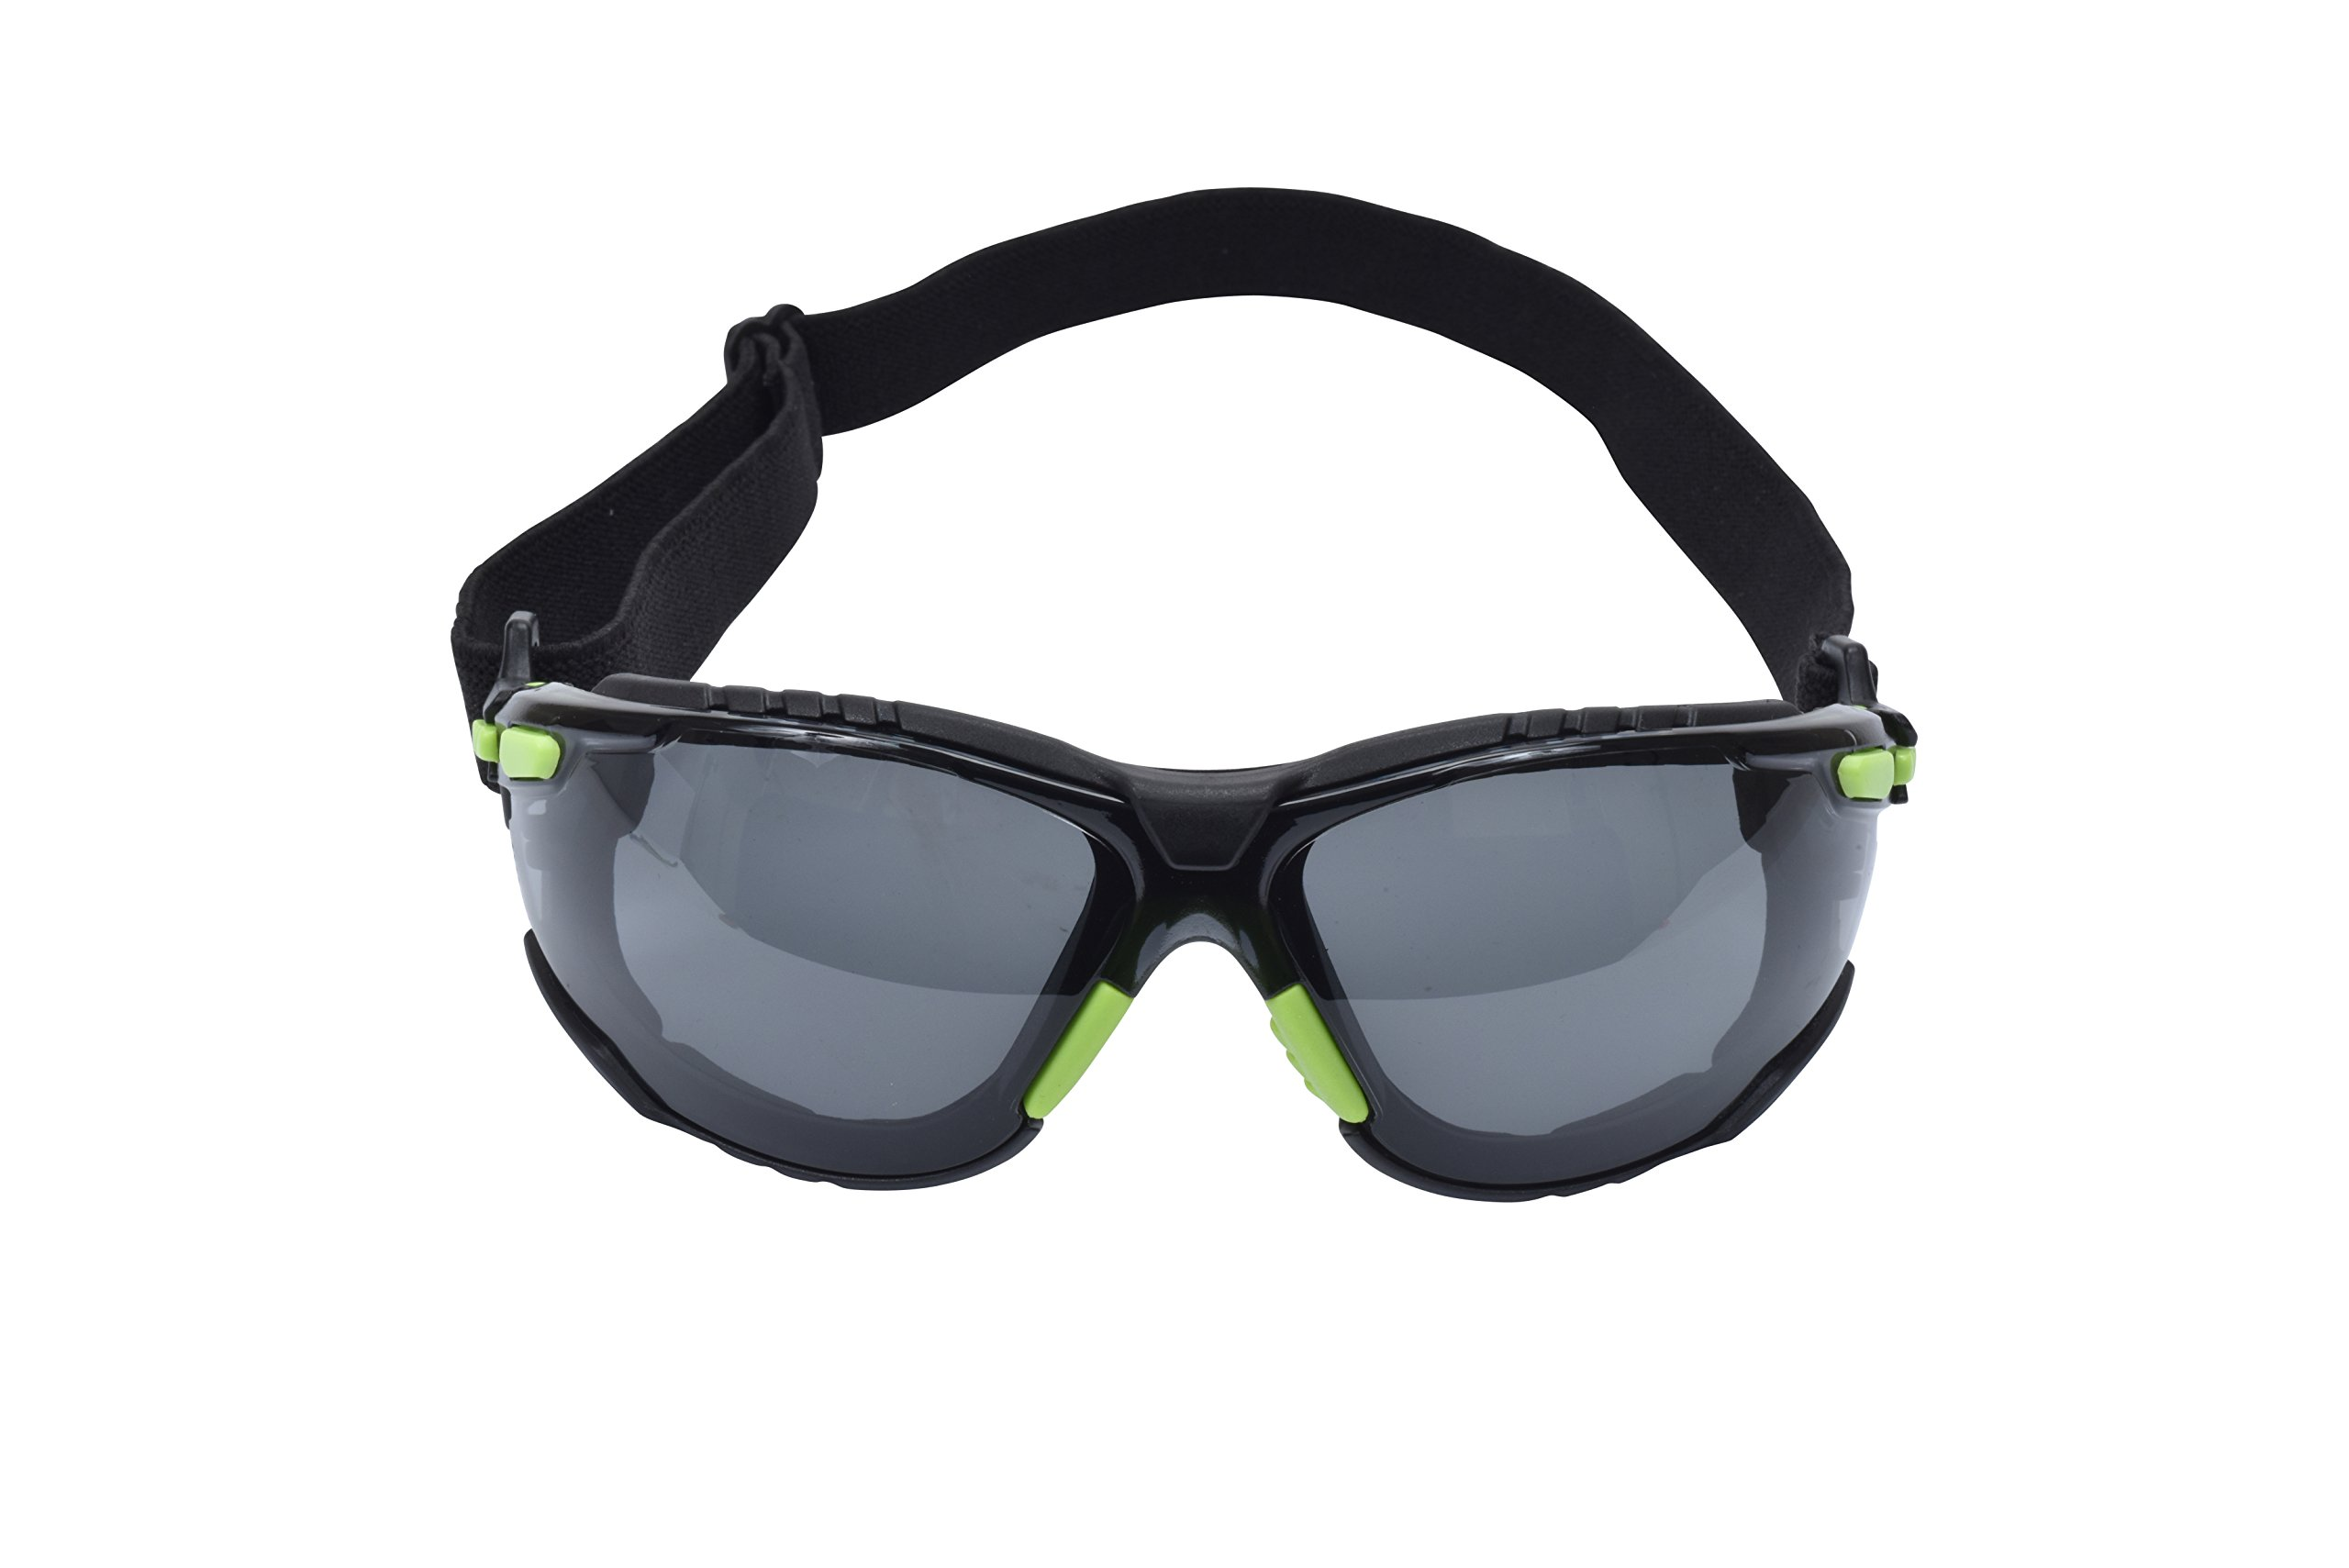 3M Solus 27363-case Protective Eyewear 1000 Series, S1202SGAF-SKT, Scotchgard Anti-Fog Lens, 5'' Height, 2'' Wide, 10'' Length, Polycarbonate/Plastic, One Size Fits Most, Green/Black/Clear (Pack of 20)